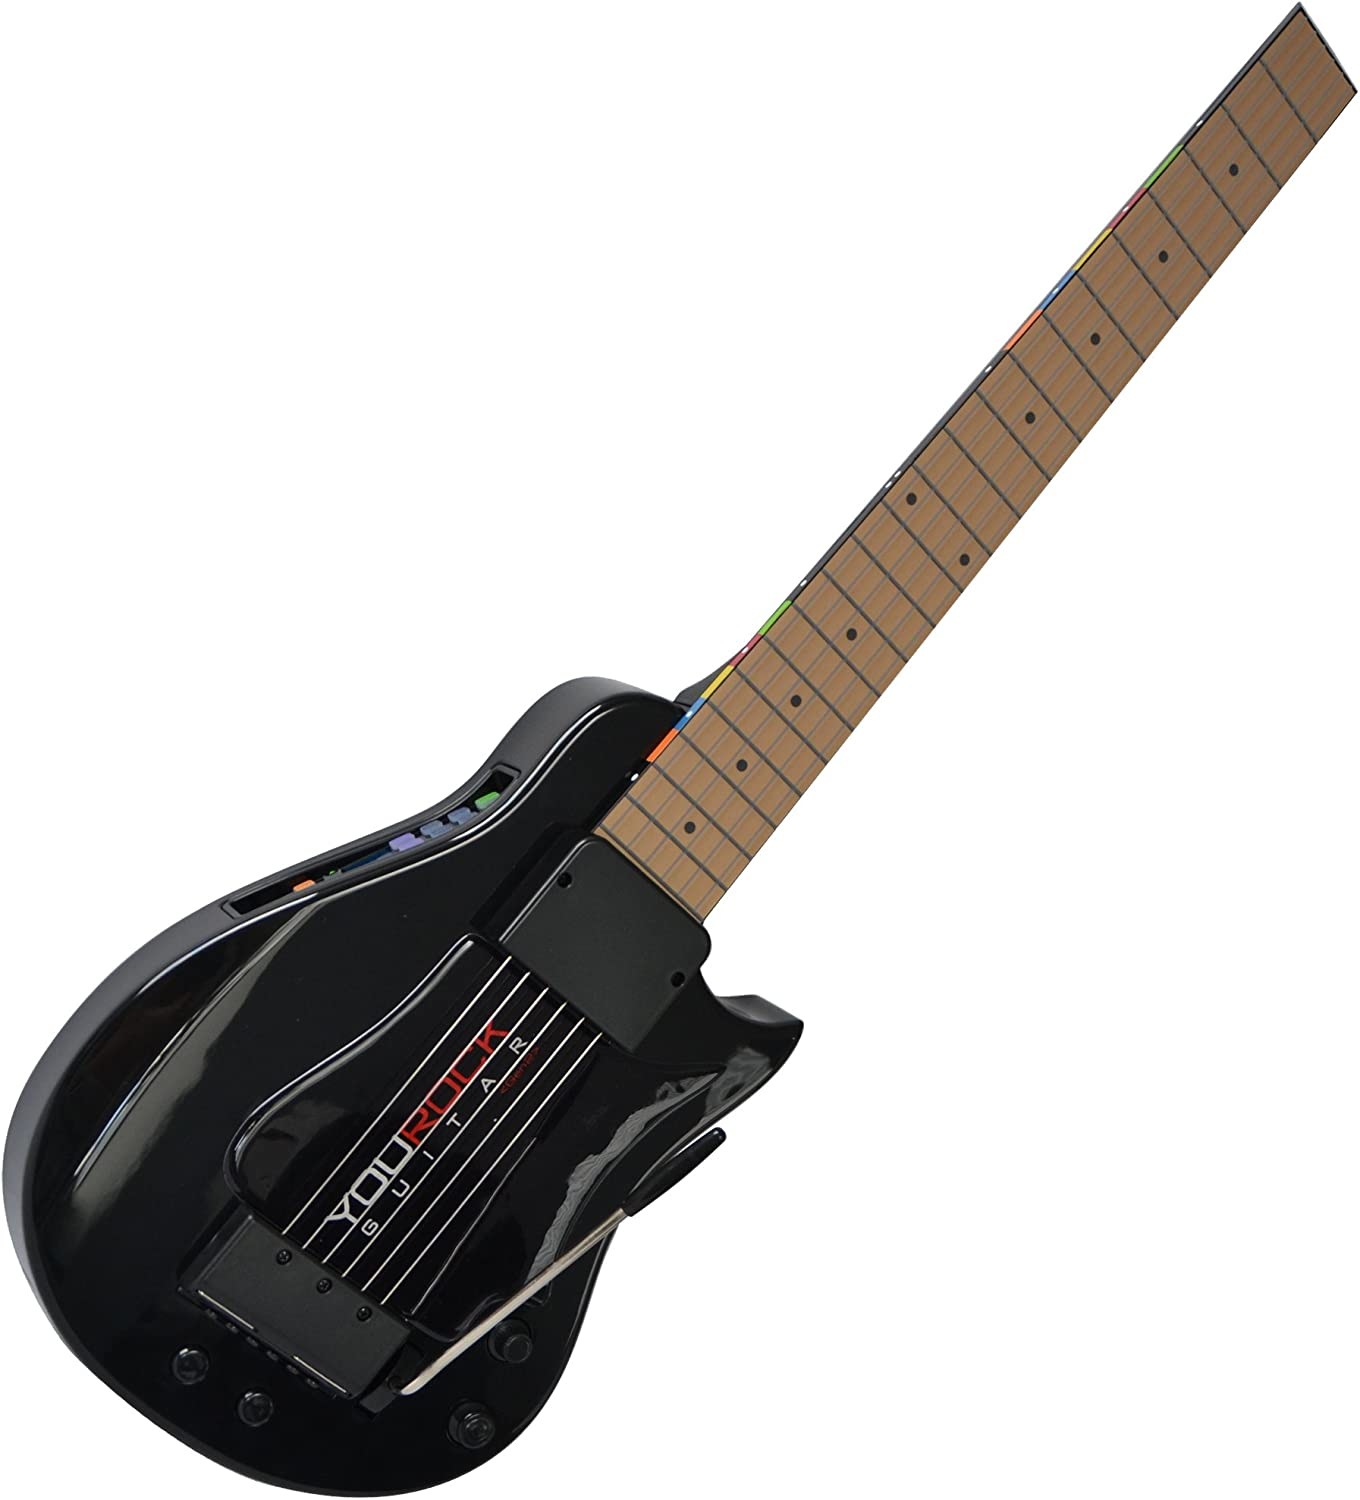 You Rock YRG-1000 Gen2 - Guitarra: Amazon.es: Instrumentos musicales